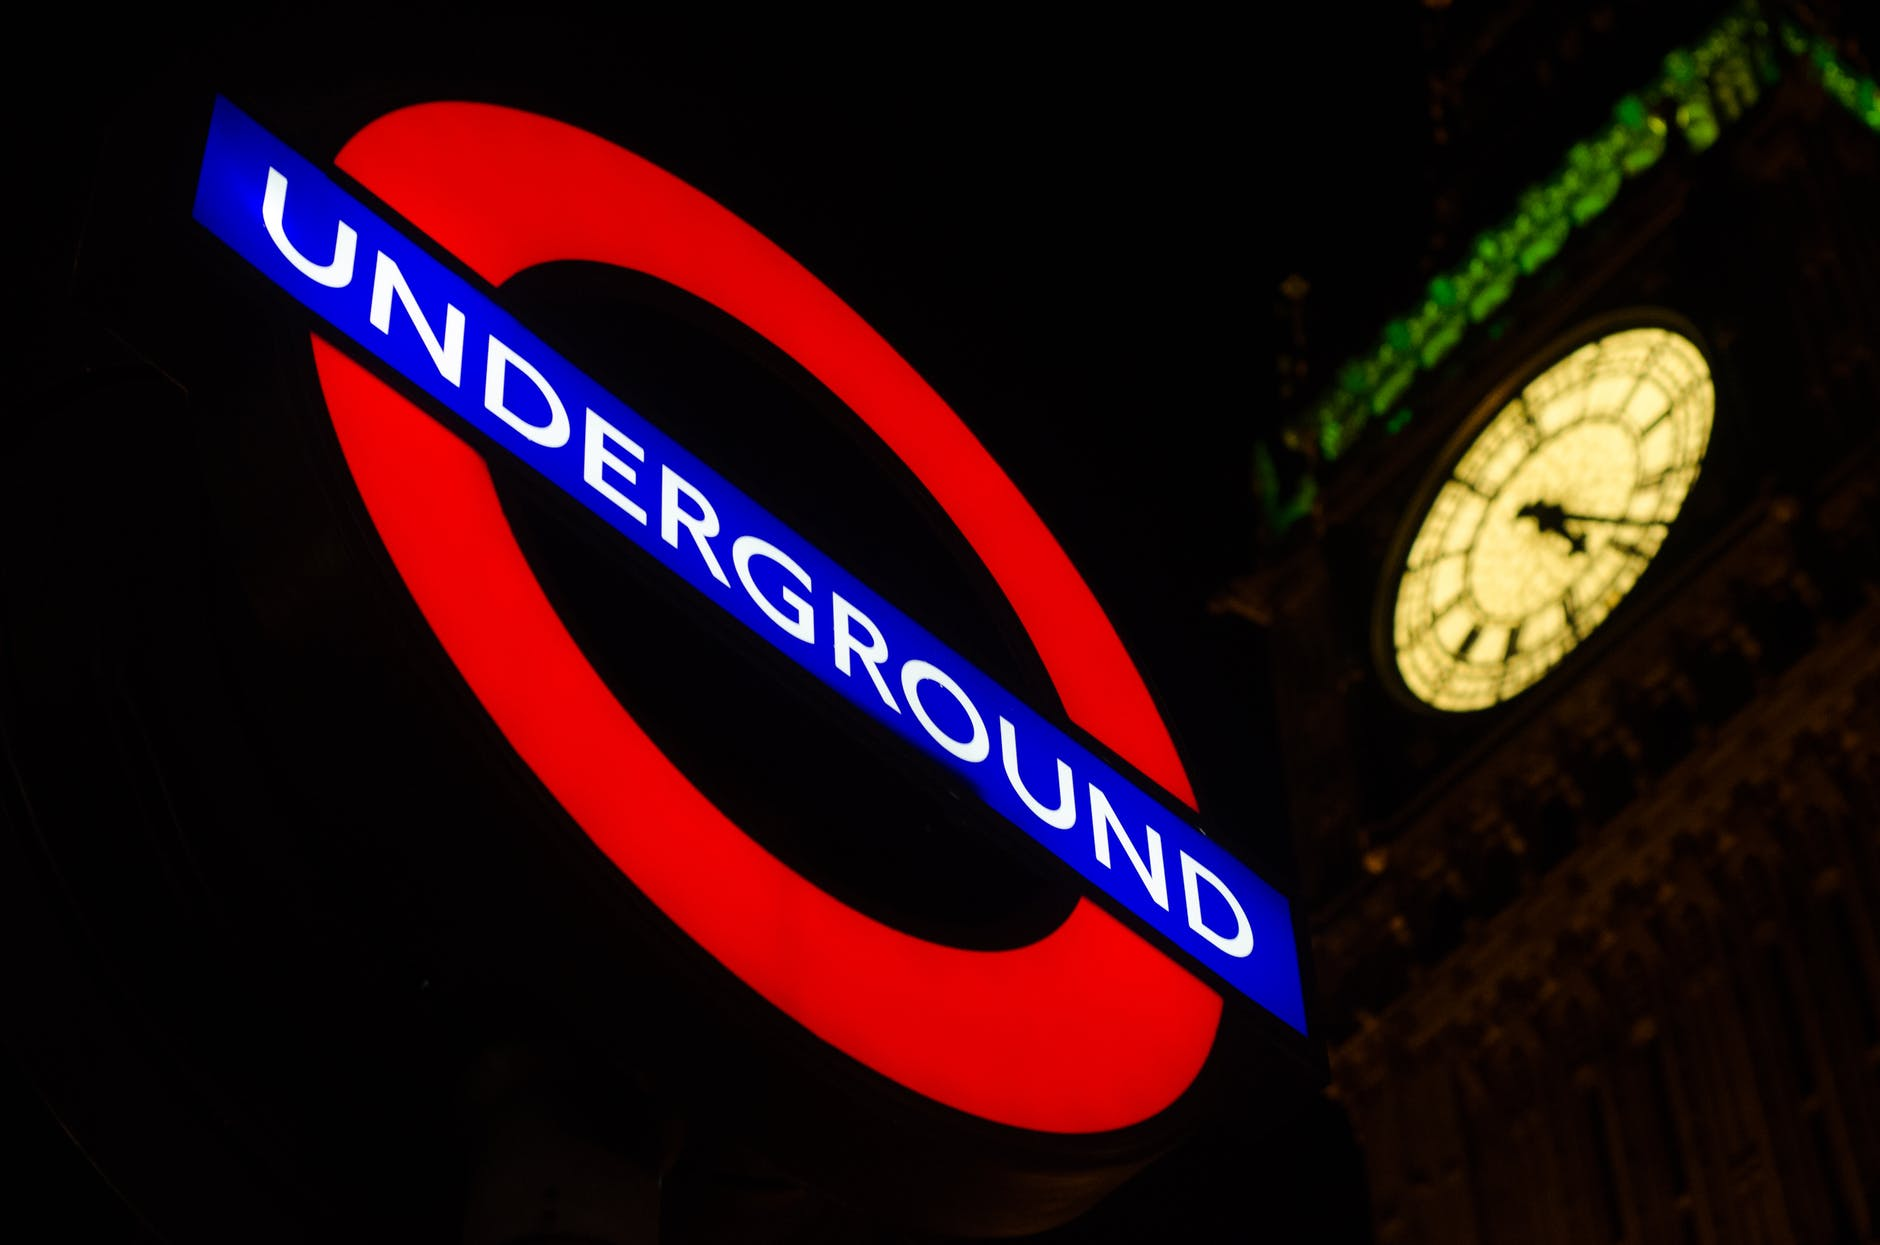 London underground - @godlywoman911